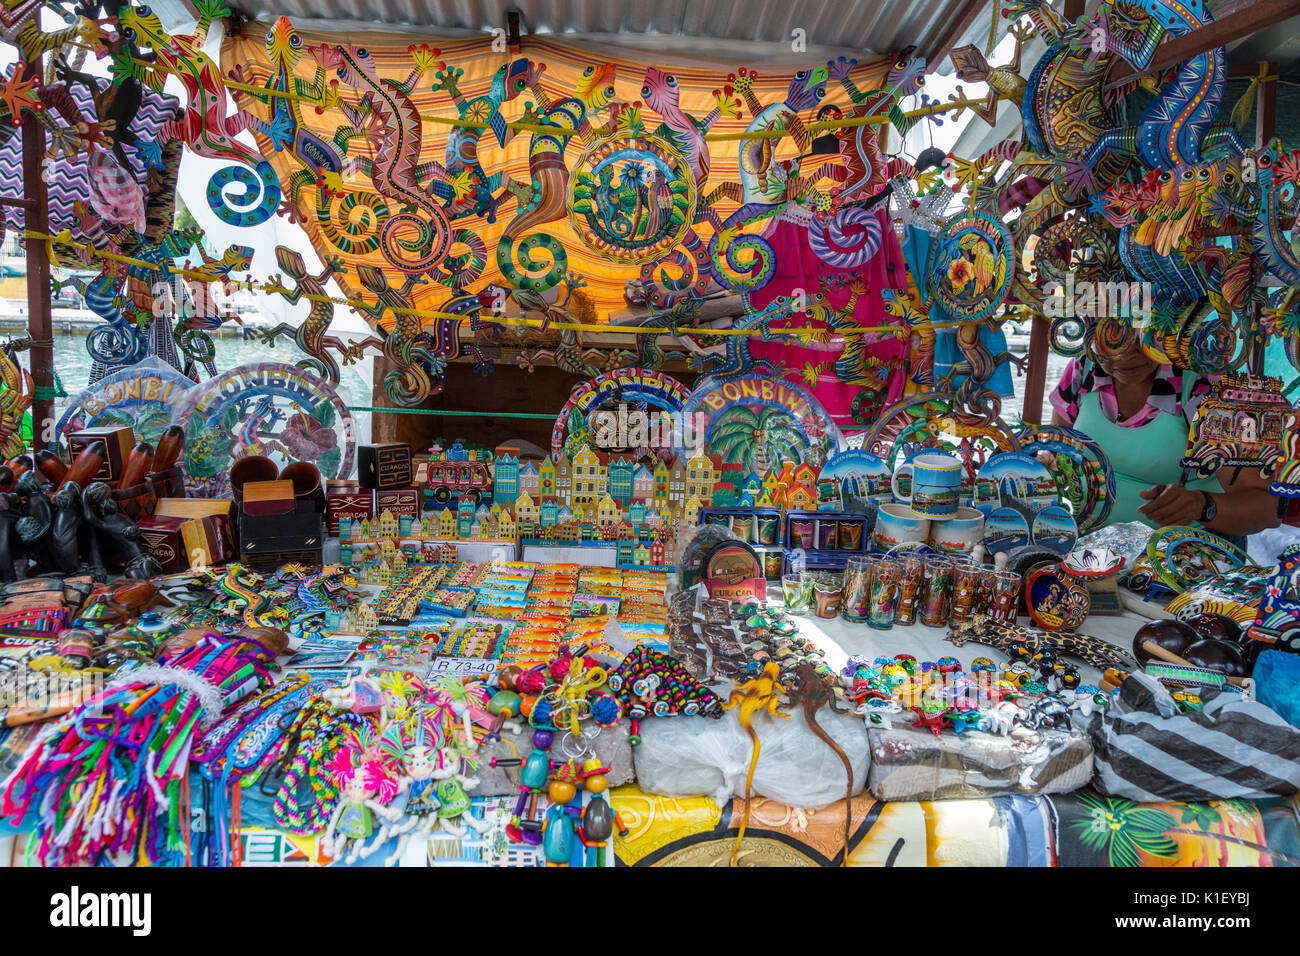 Willemstad, Curacao, Lesser Antilles.  Souvenir Stand in the Market. Stock Photo